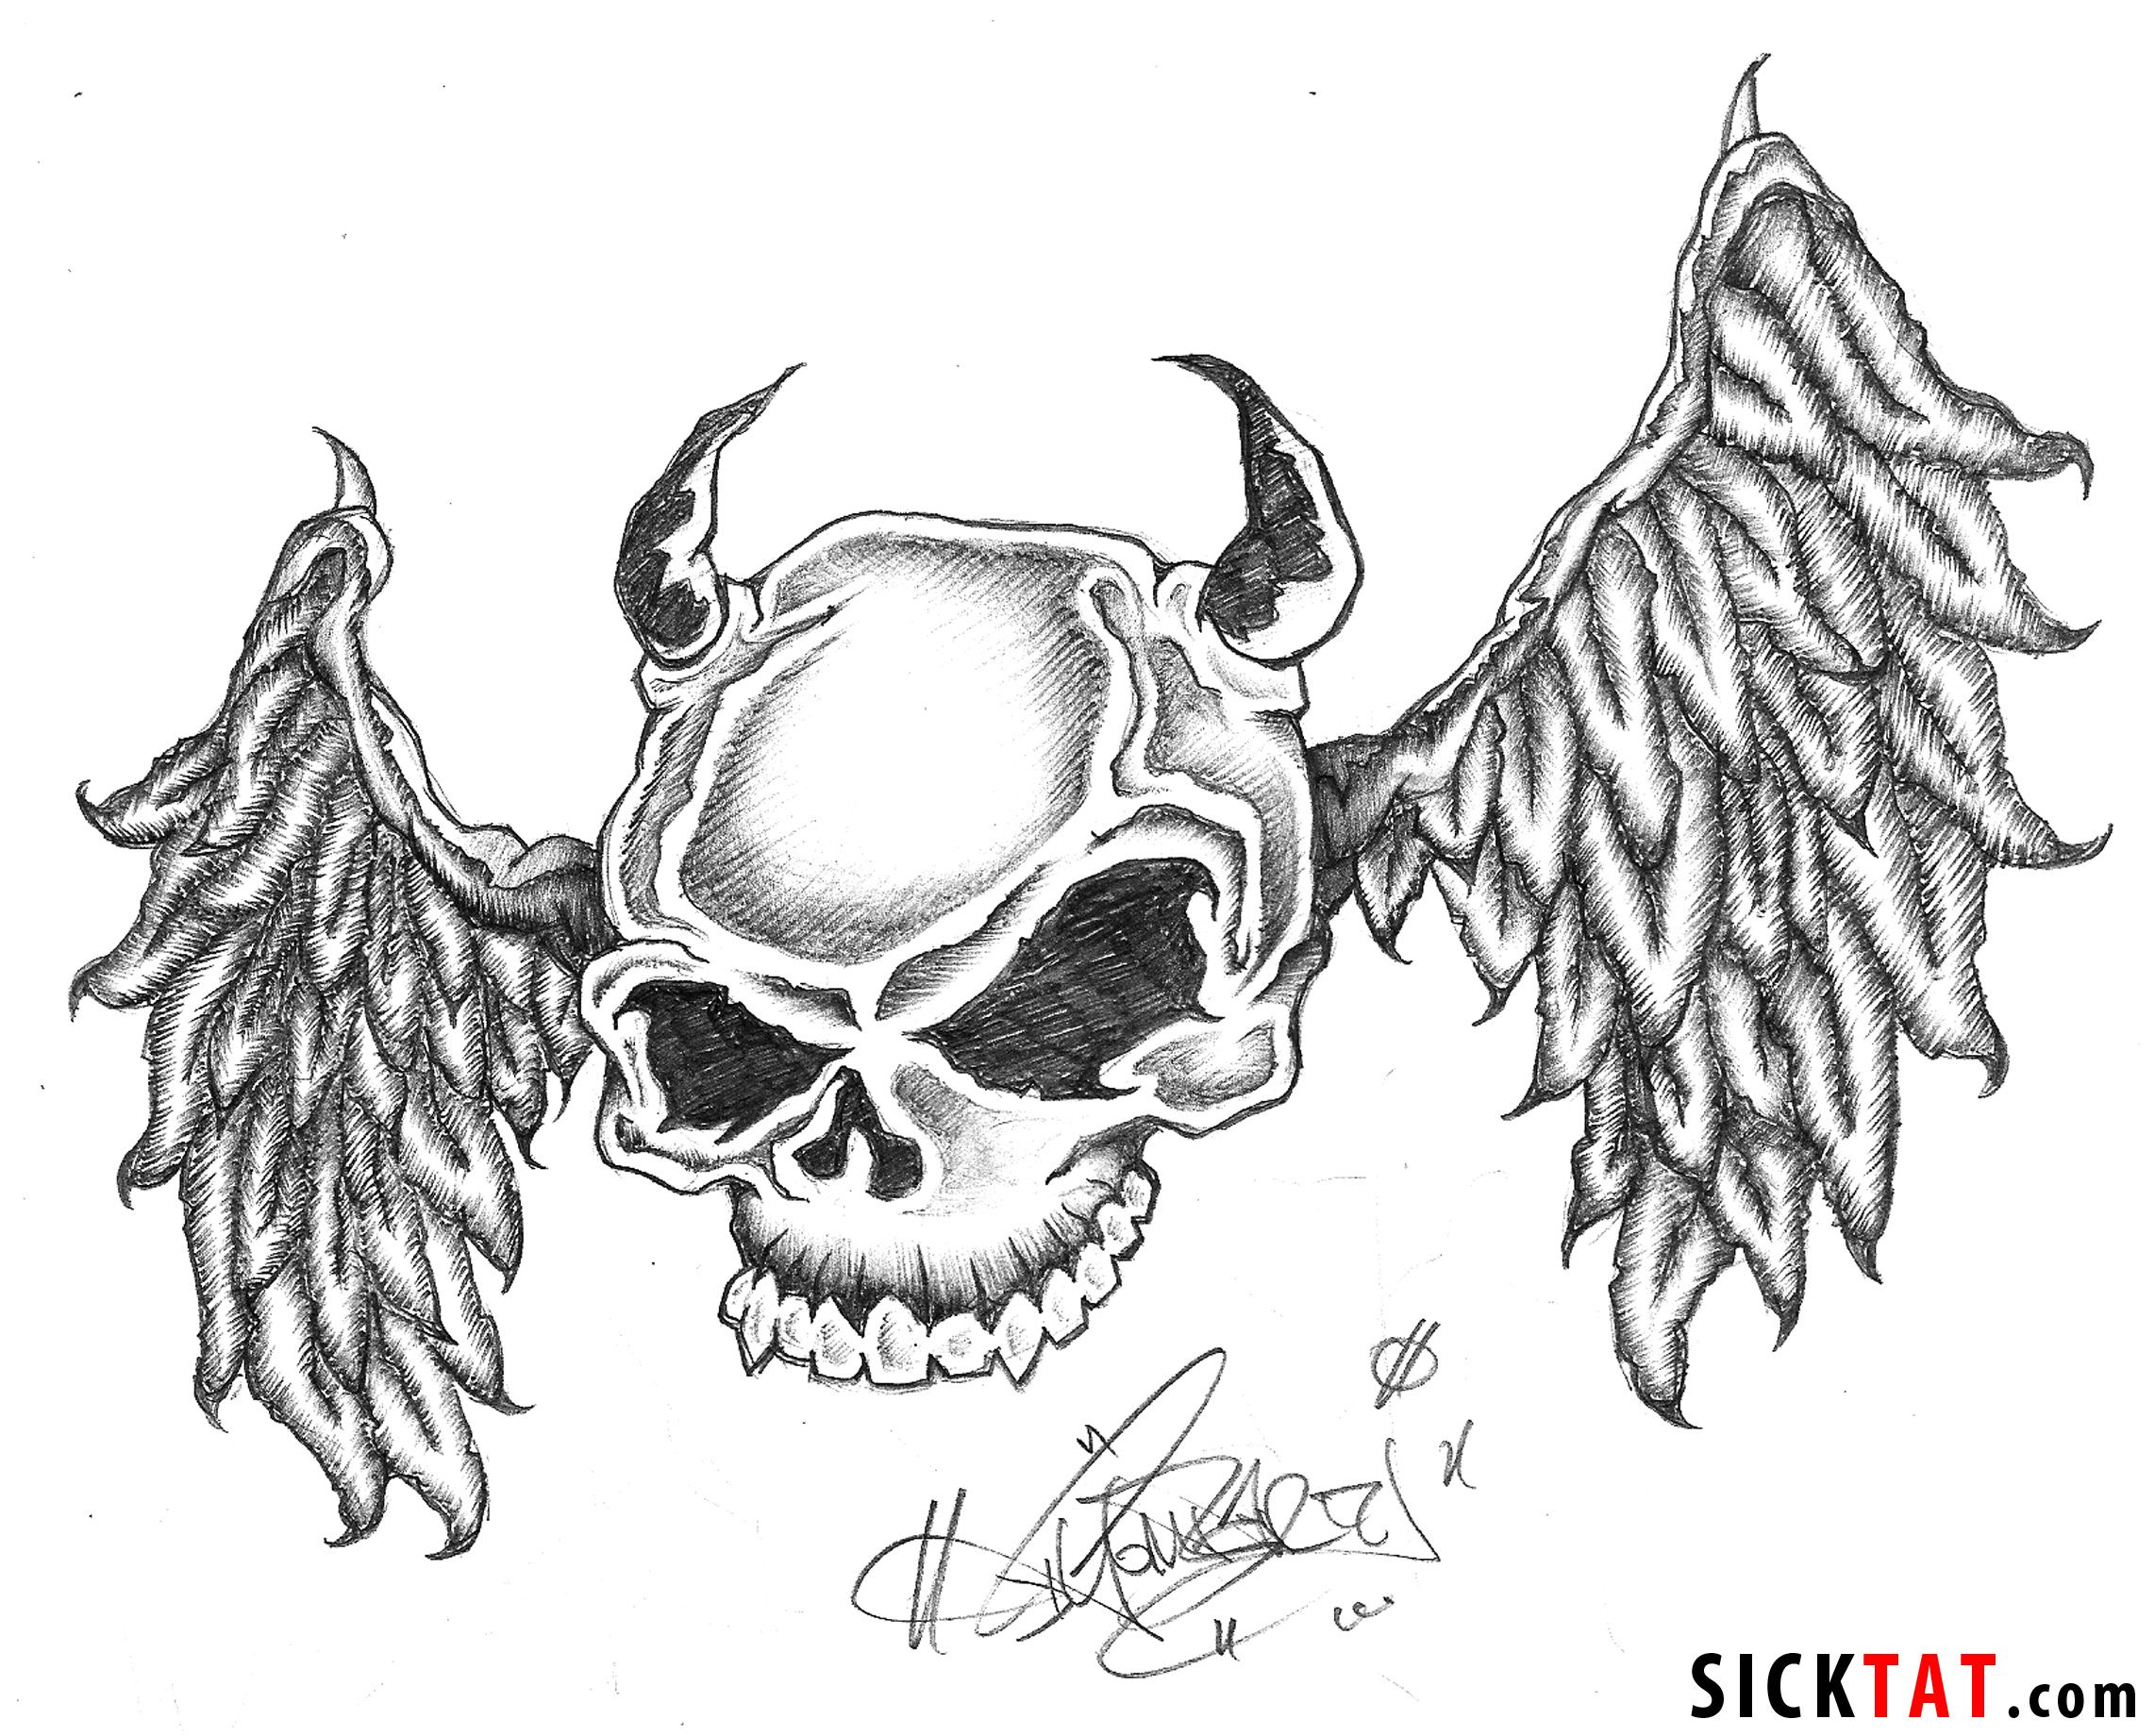 Free skull tattoo designs to print - Skull With Wings Tattoos Jpg 2284 1840 Beautiful Body Art